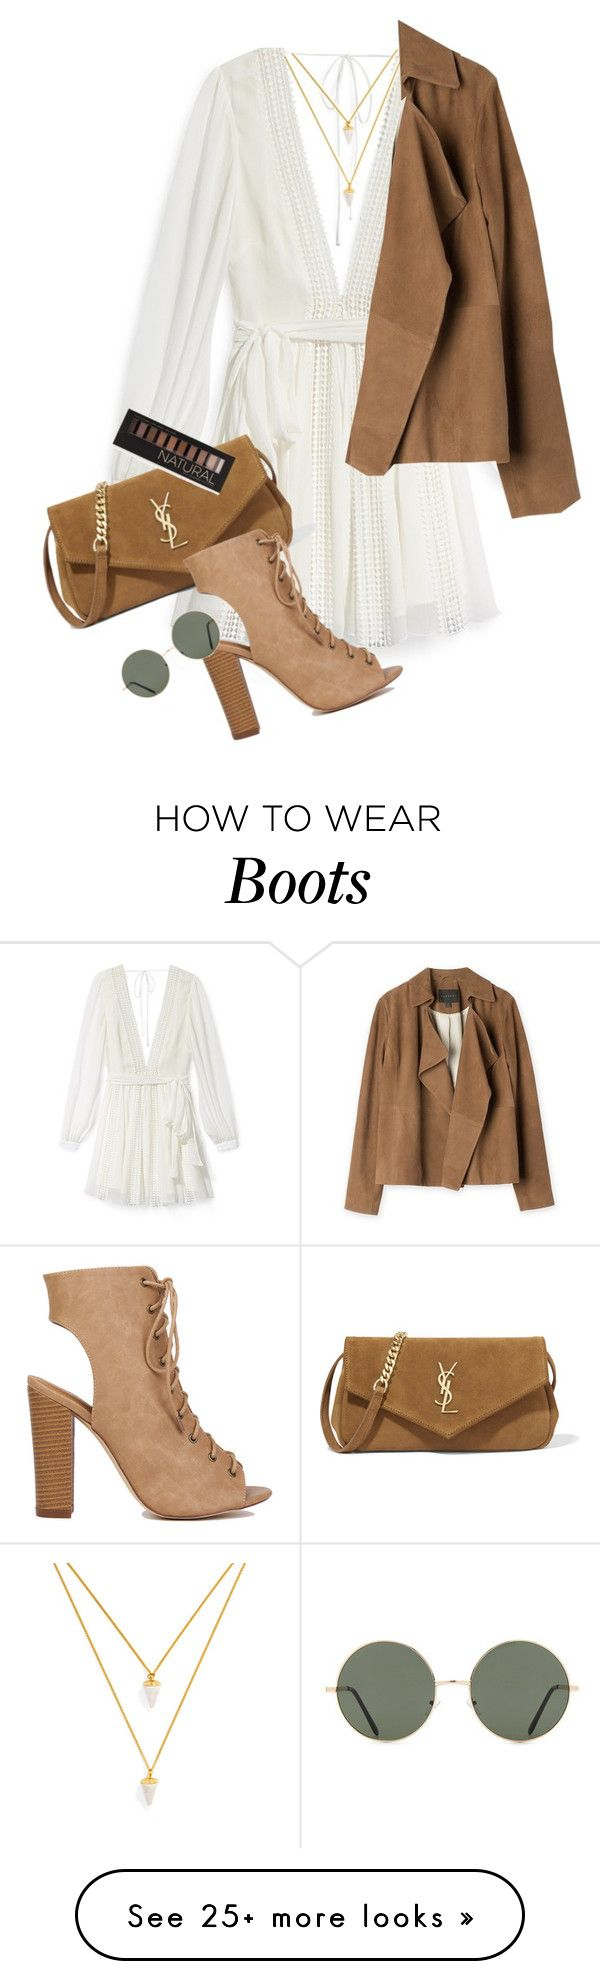 """""""70s"""" by dancingdirty on Polyvore featuring Rebecca Minkoff, BaubleBar, Yves Saint Laurent and Forever 21"""